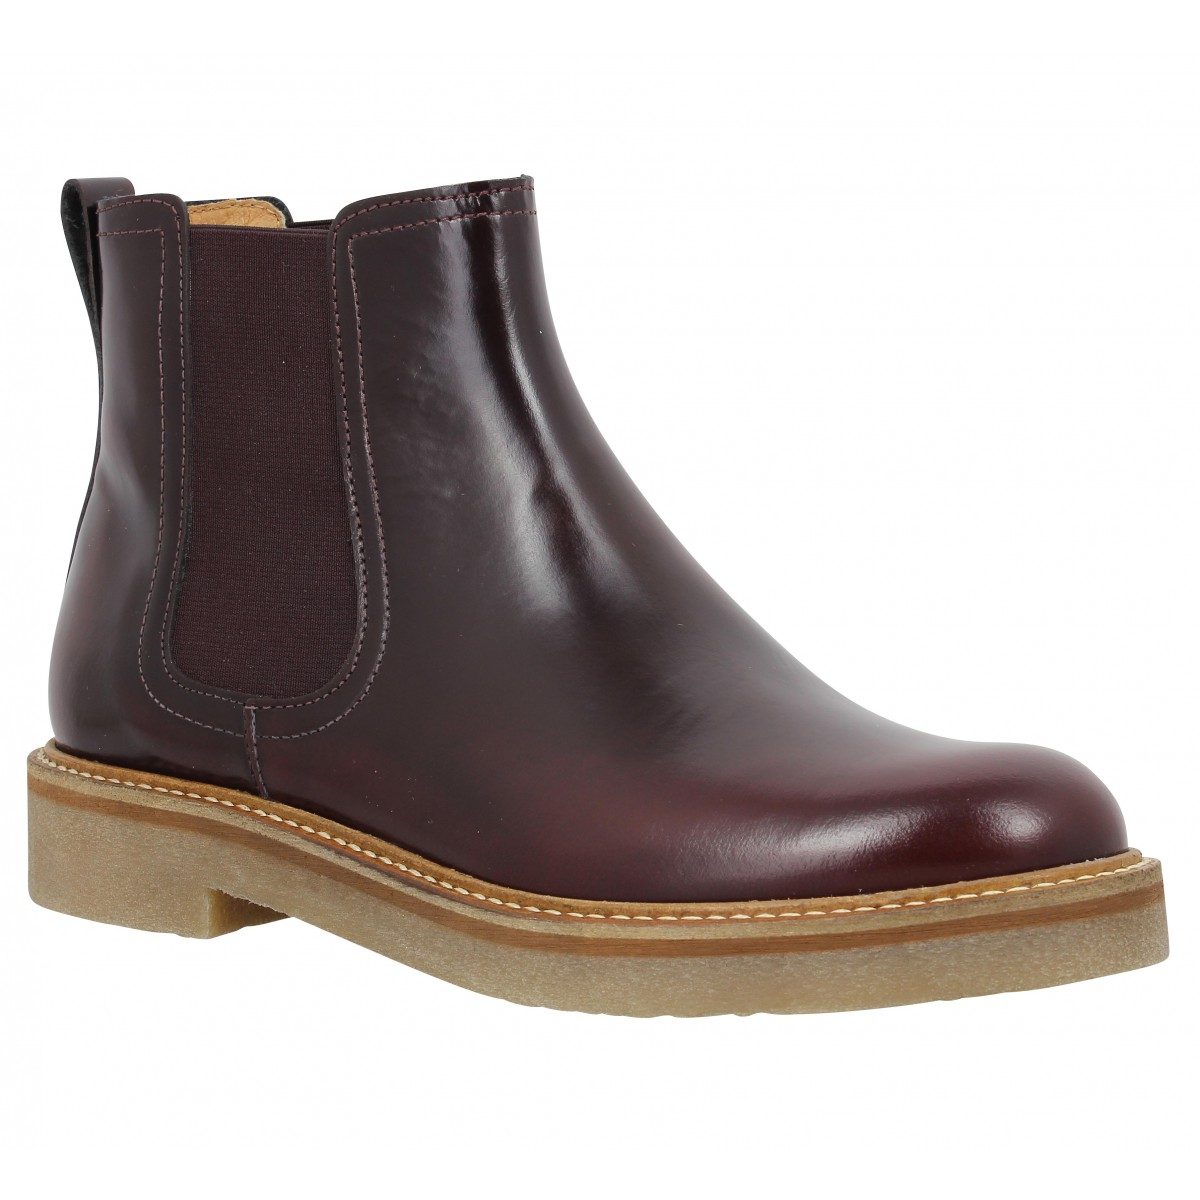 Bottines KICKERS Oxford Chic Femme Bordeaux